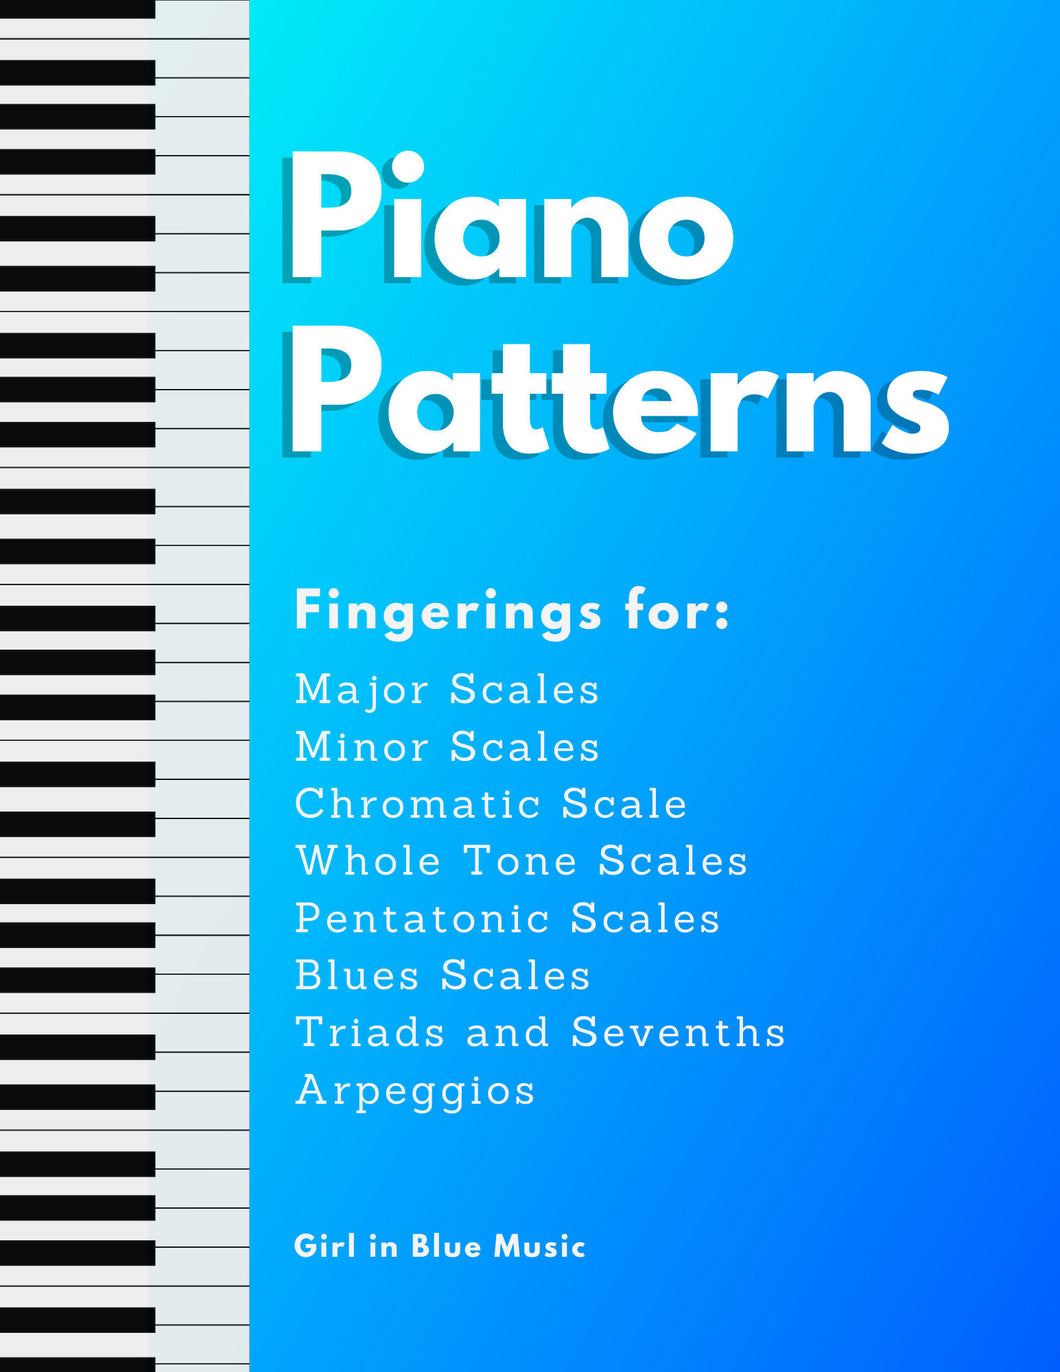 Piano Patterns: Fingerings for Scales, Chords, and Arpeggios